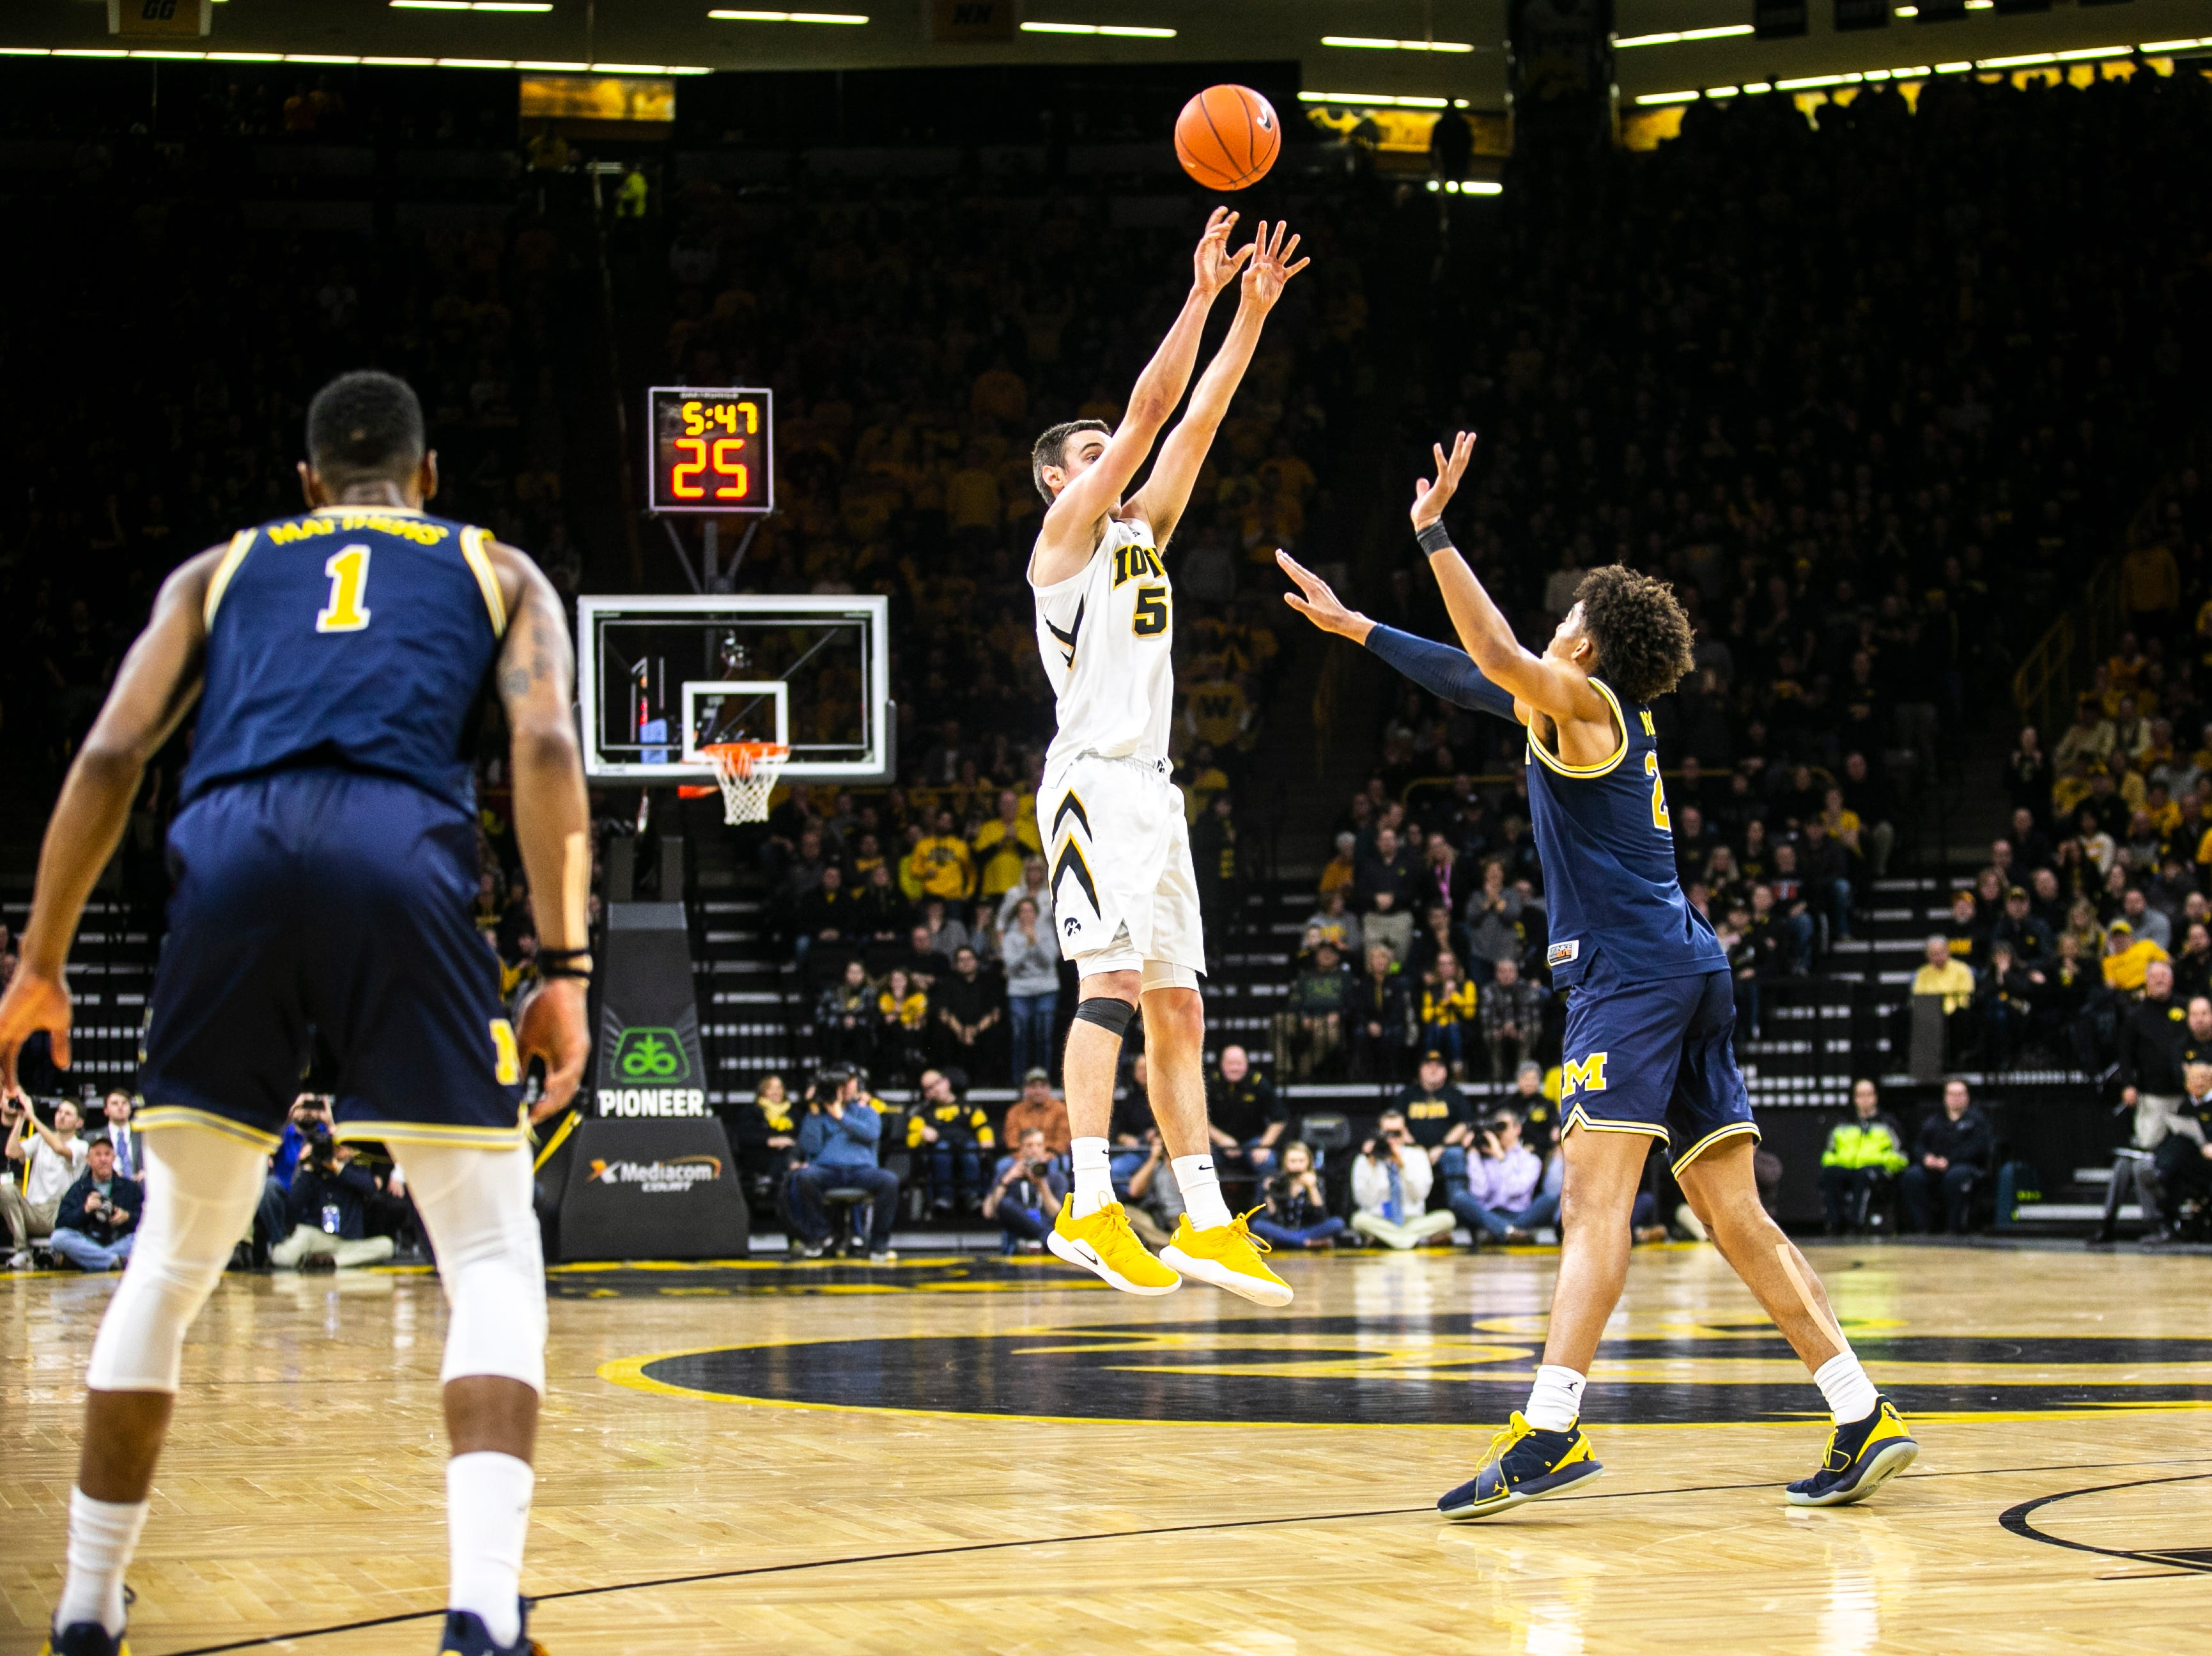 Iowa forward Nicholas Baer (51) shoots a 3-point basket while Michigan guard Jordan Poole (2) defends during a NCAA Big Ten Conference men's basketball game on Friday, Feb. 1, 2019, at Carver-Hawkeye Arena in Iowa City, Iowa.